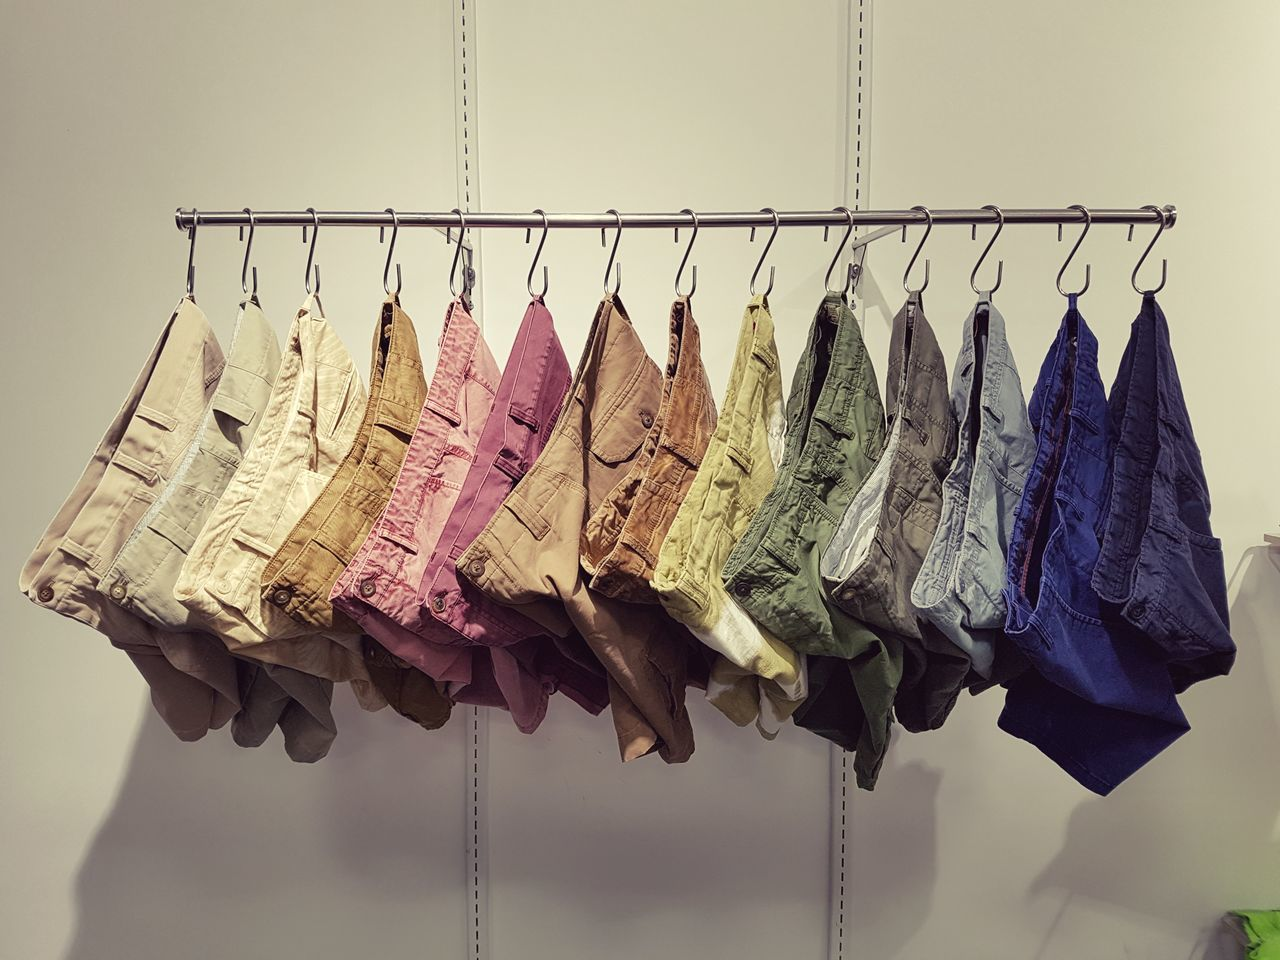 43 Golden Moments Garments Shorts Designing Fashion Washed Shorts Visual Merchandising Display